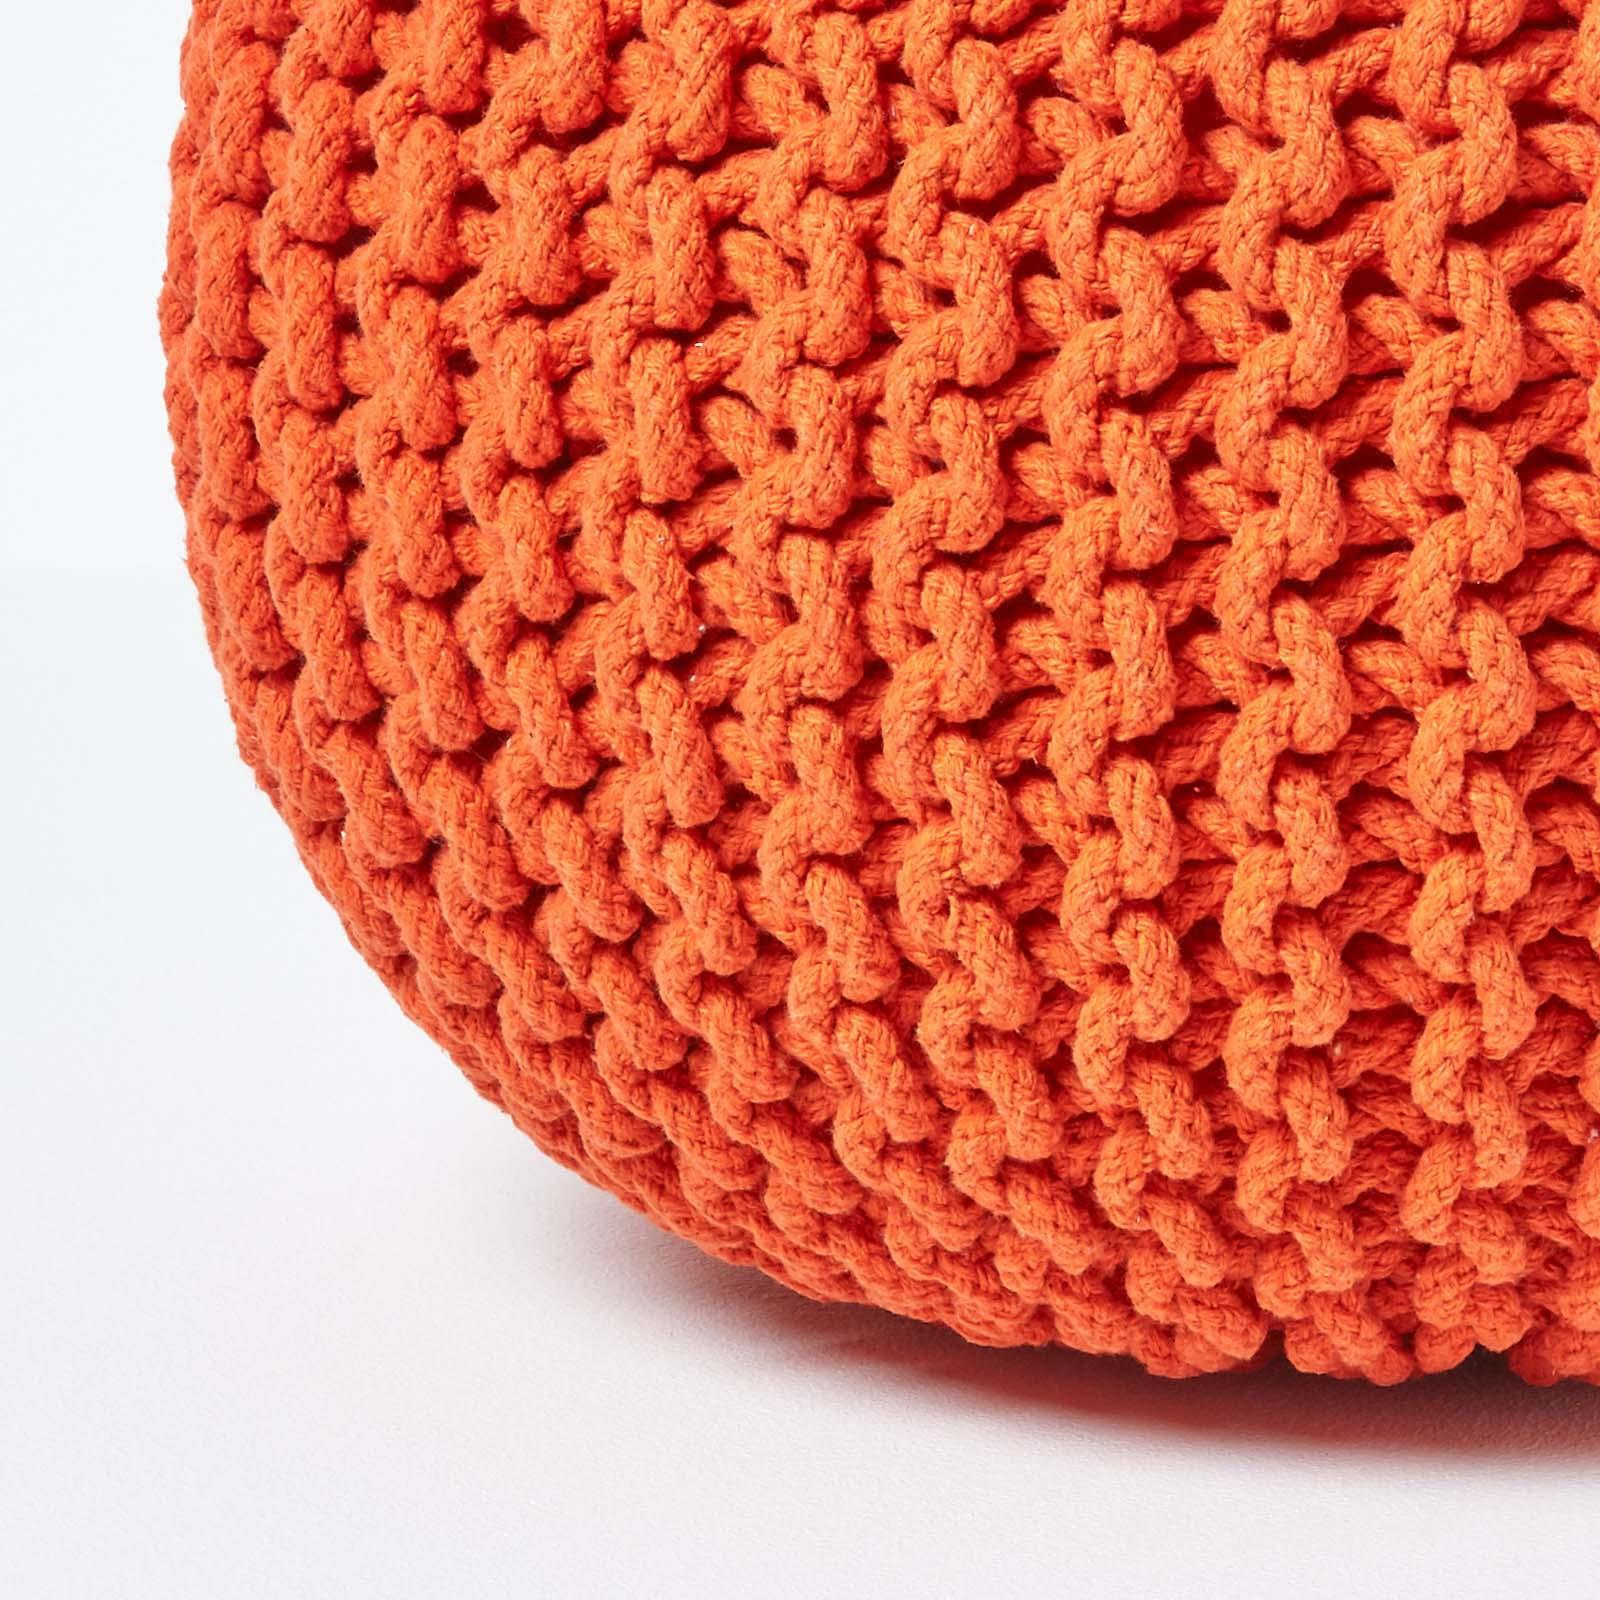 Hand-Knitted-100-Cotton-Pouffes-Round-Sphere-Or-Cube-Square-Chunky-Footstools thumbnail 119